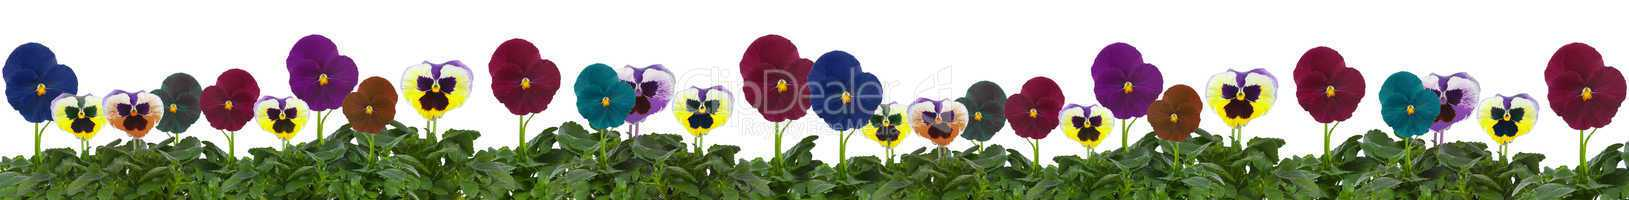 Row of pansies isolated on a white